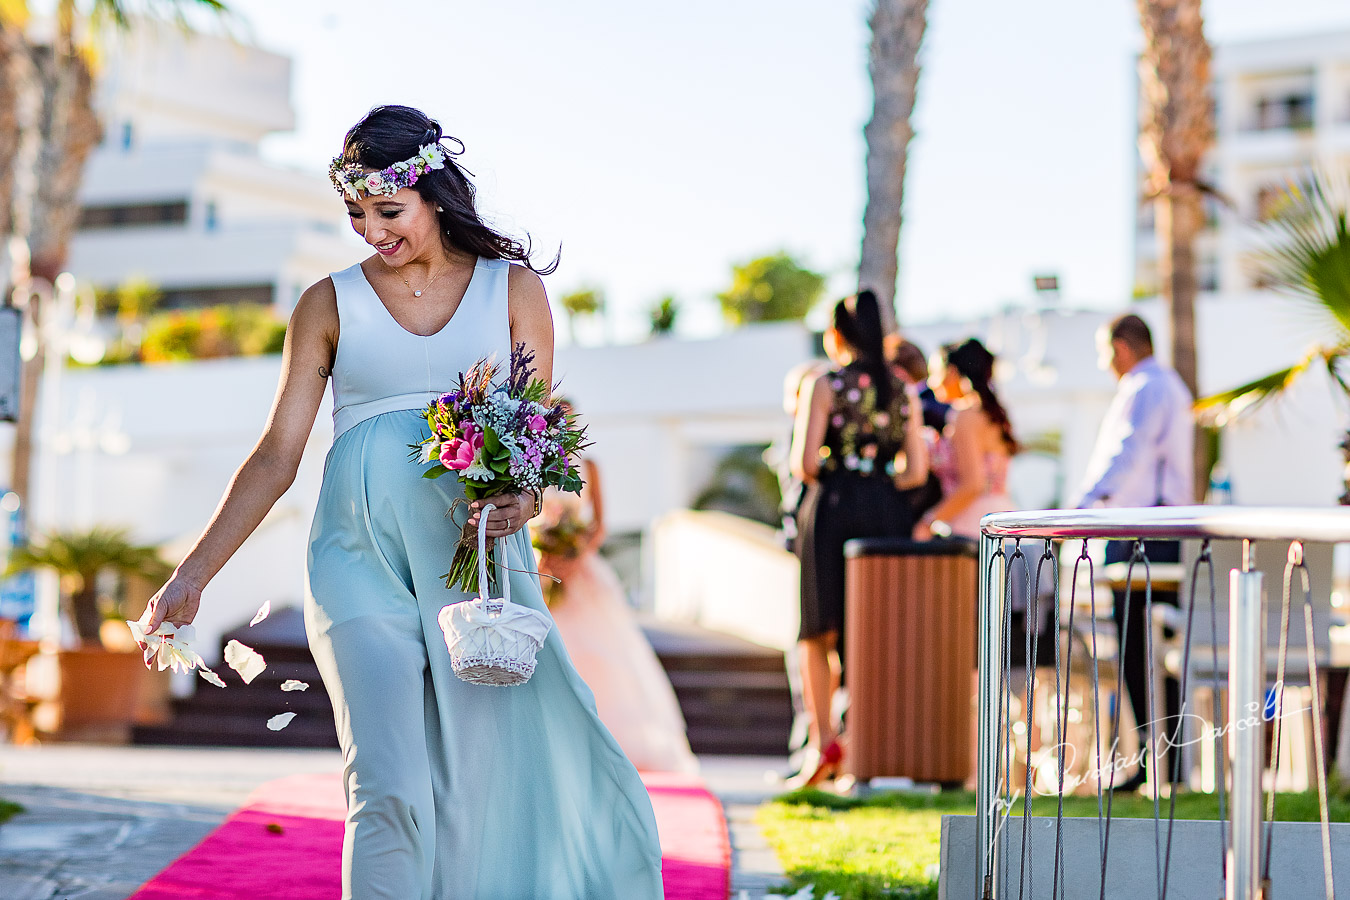 Bridesmaid photographed during the ceremony, as part of an Exclusive Wedding photography at Grand Resort Limassol, captured by Cyprus Wedding Photographer Cristian Dascalu.